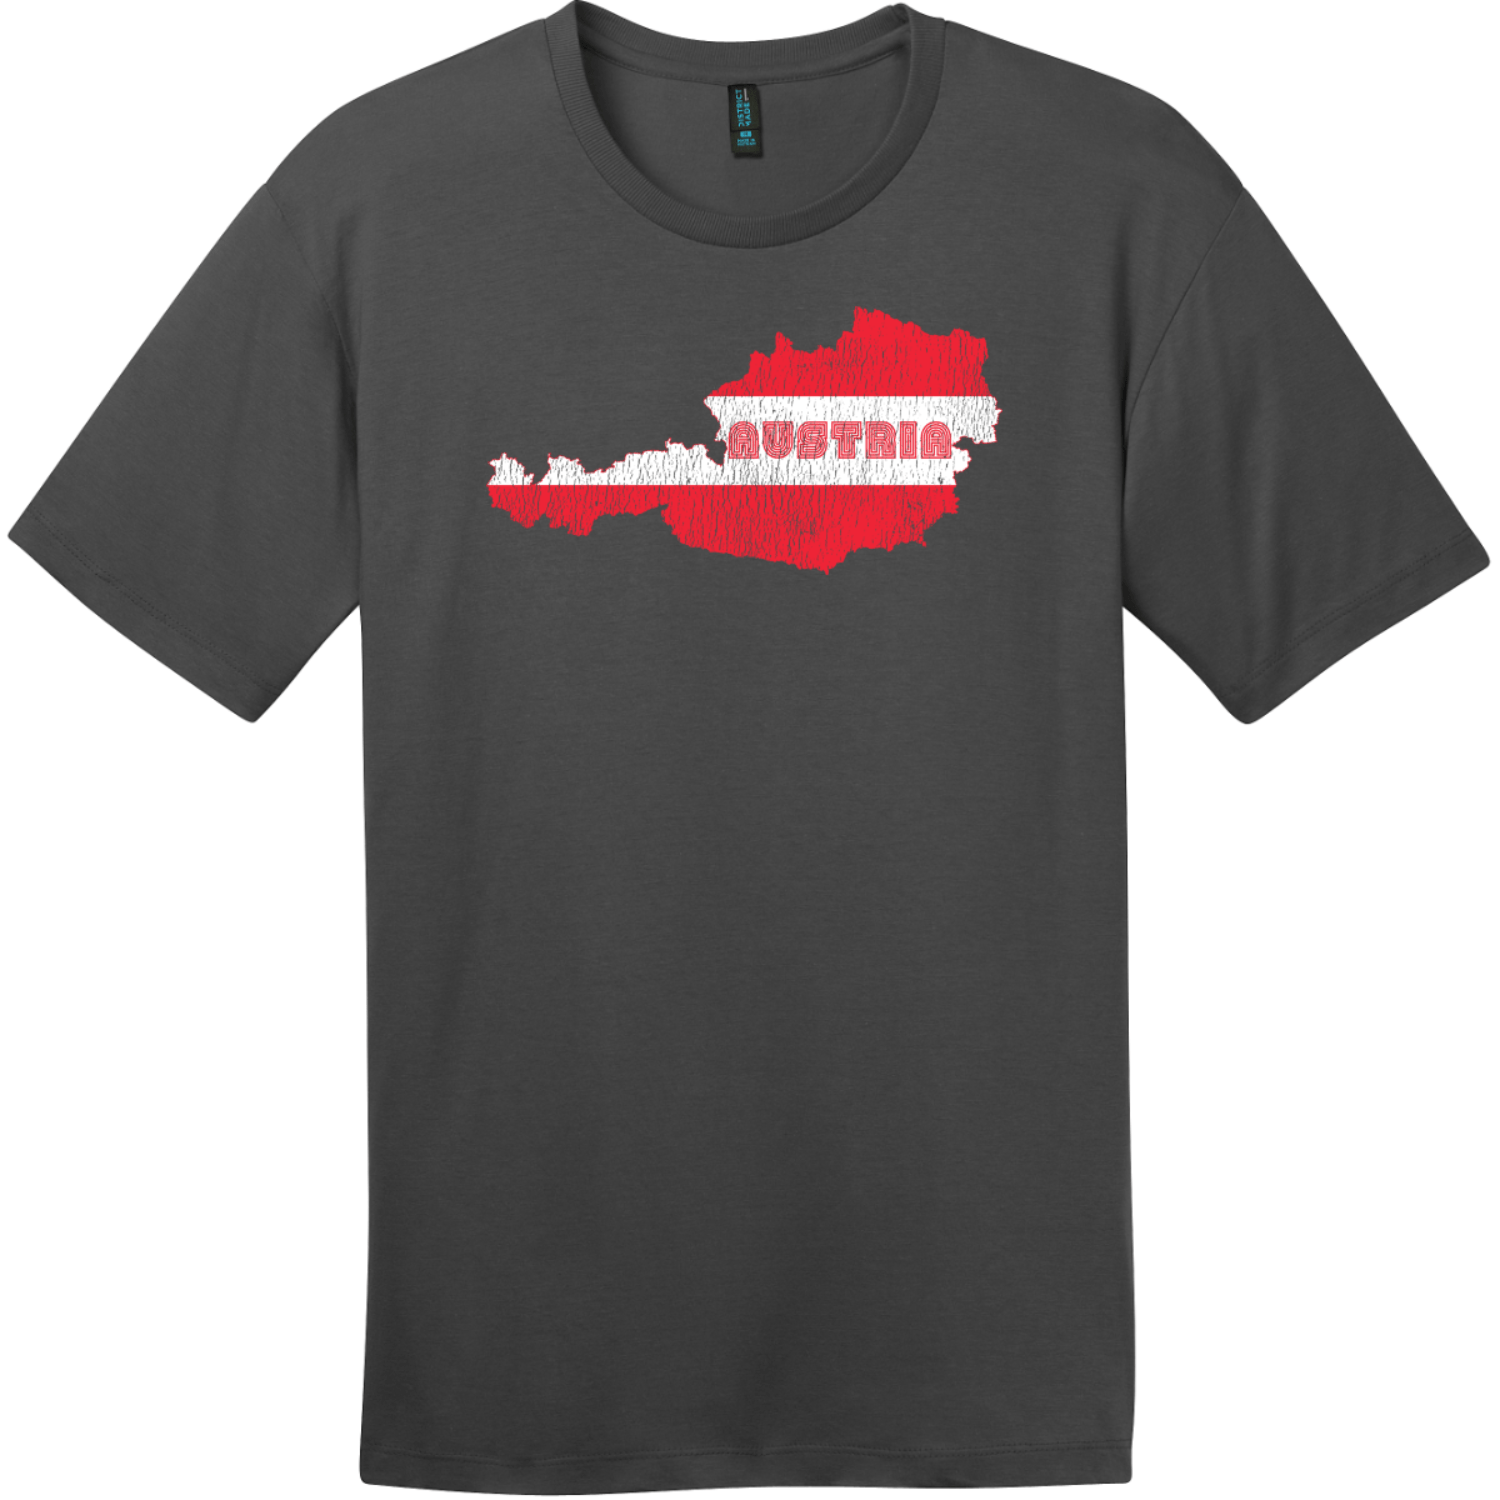 Austria Flag Country Retro T-Shirt Charcoal District Perfect Weight Tee DT104